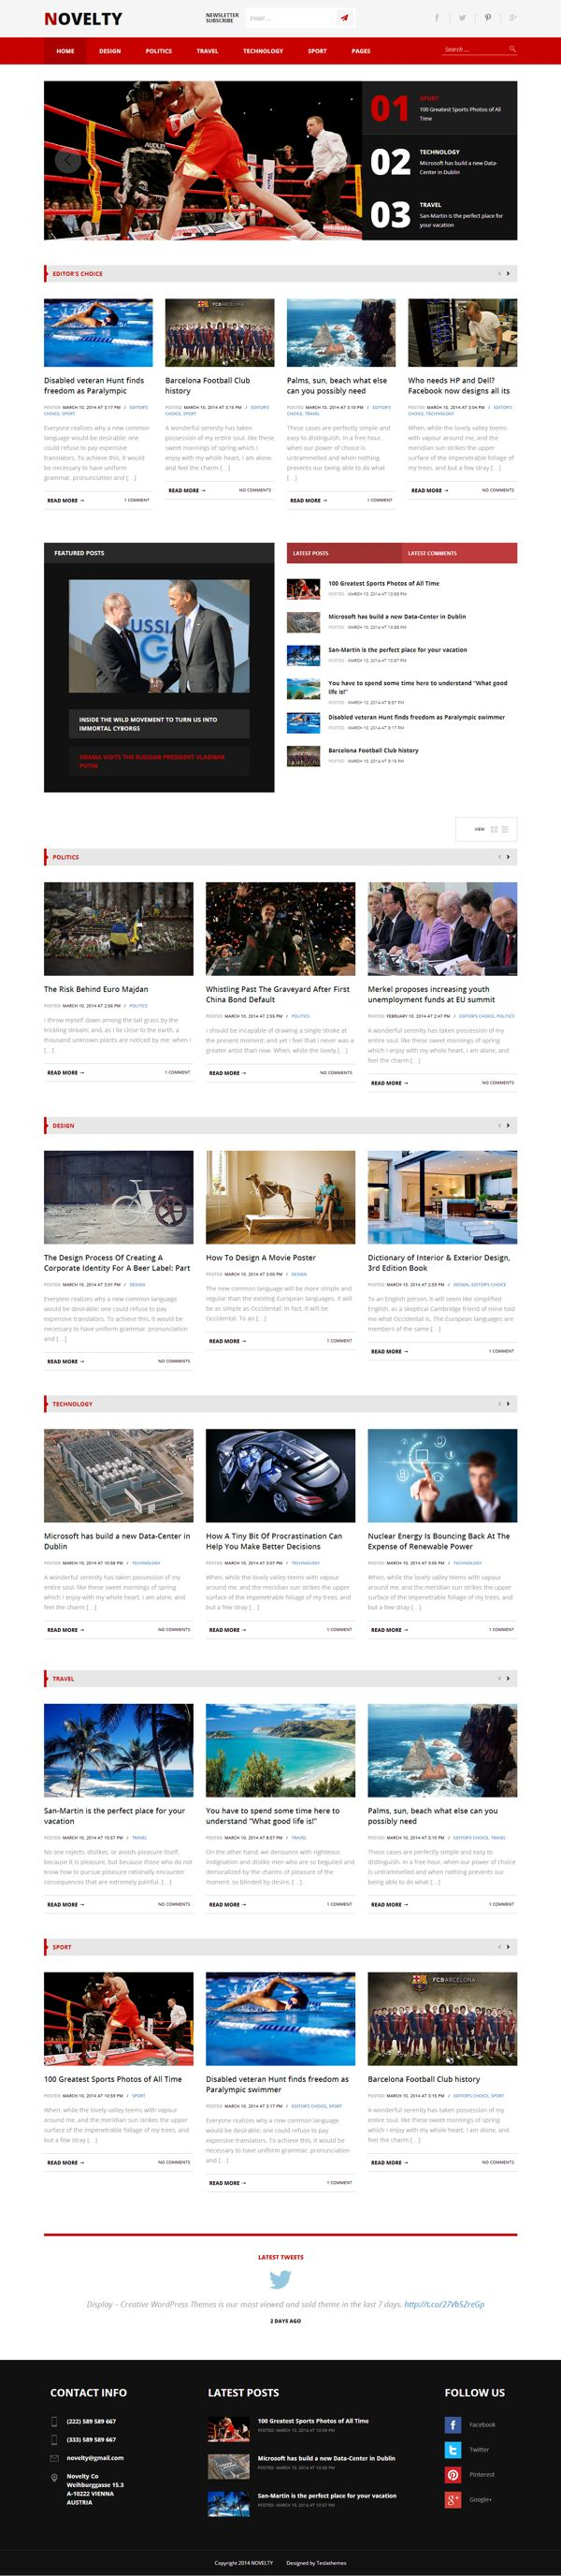 NOVELTY - Magazine WordPress Theme by WordPress Awards, via Behance